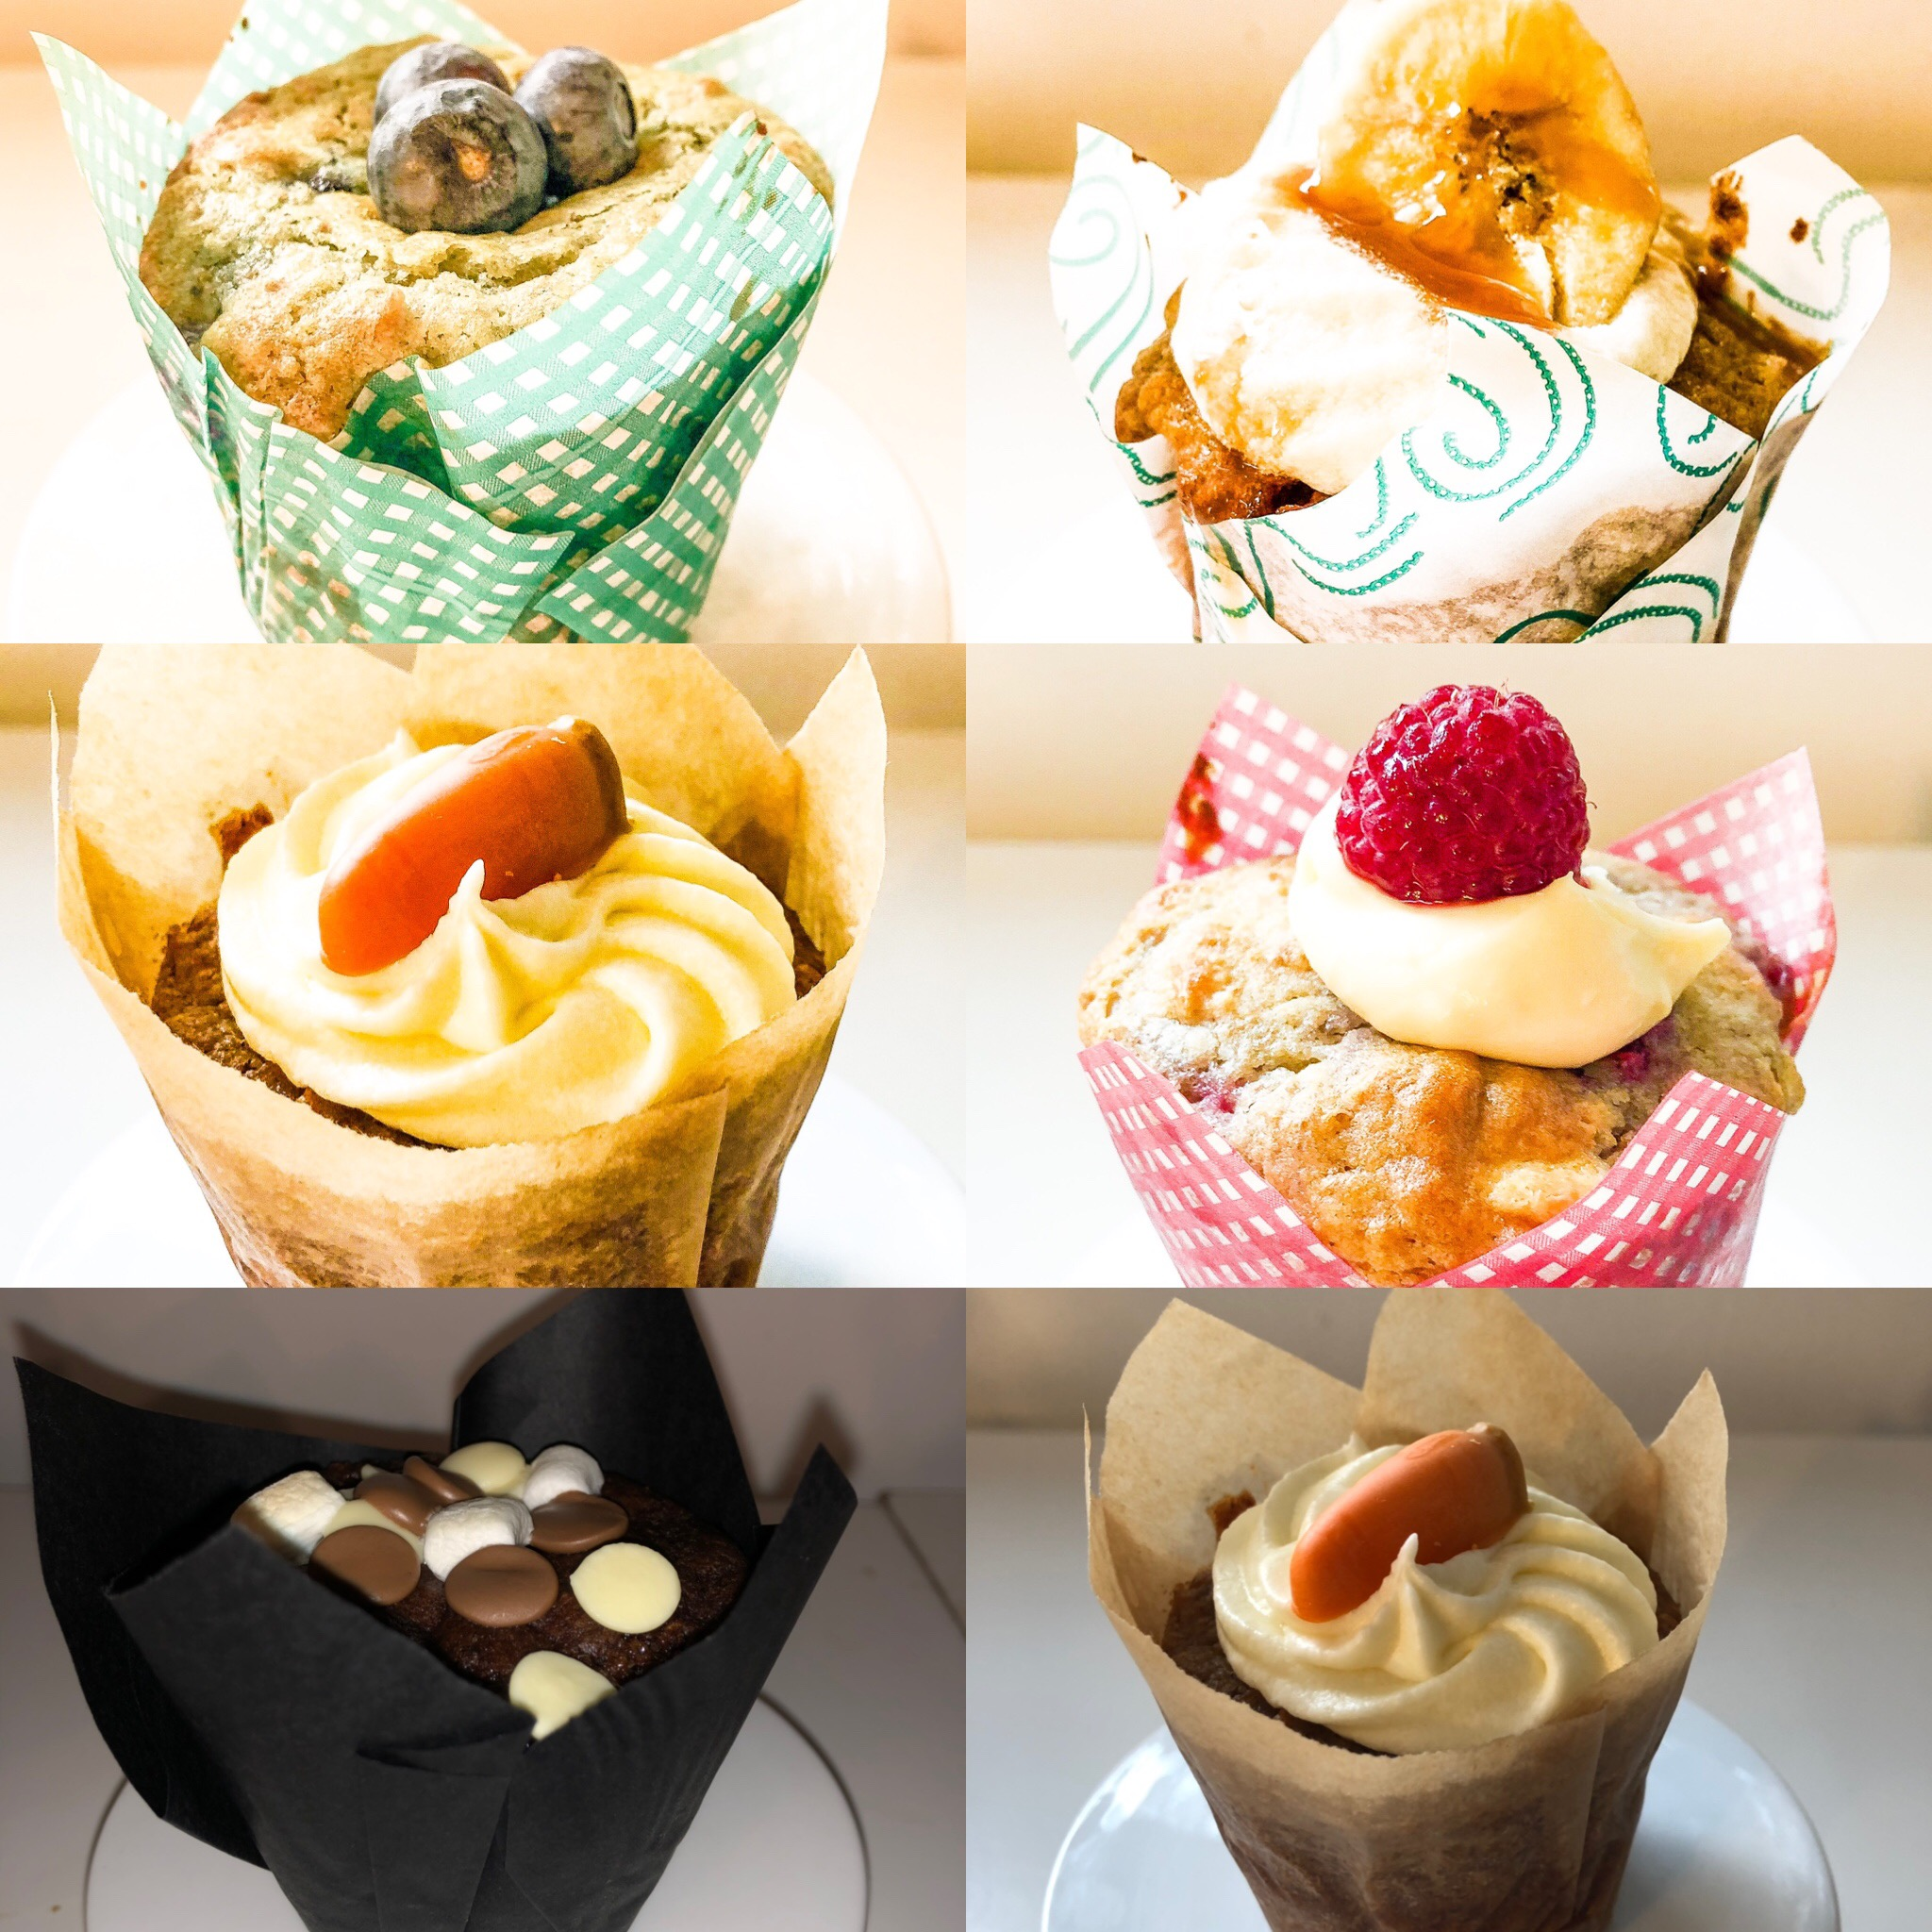 Summer Special Offer - Muffins 6 for 4